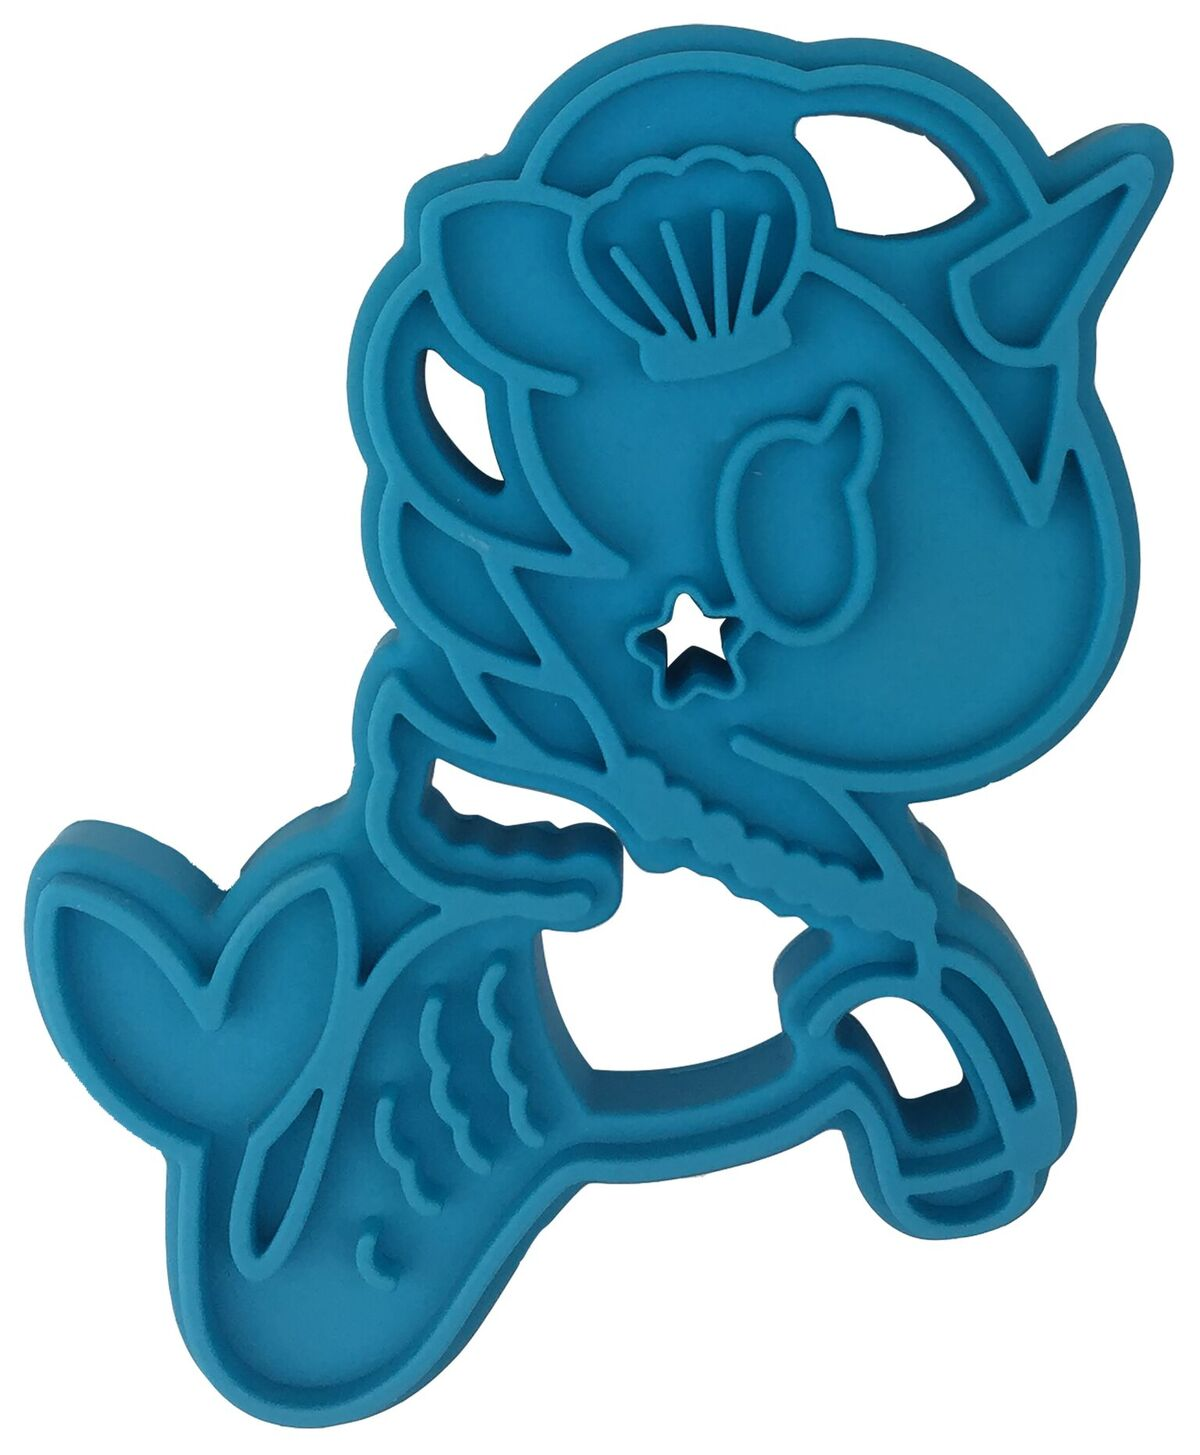 Itzy Ritzy Silicone Teethers